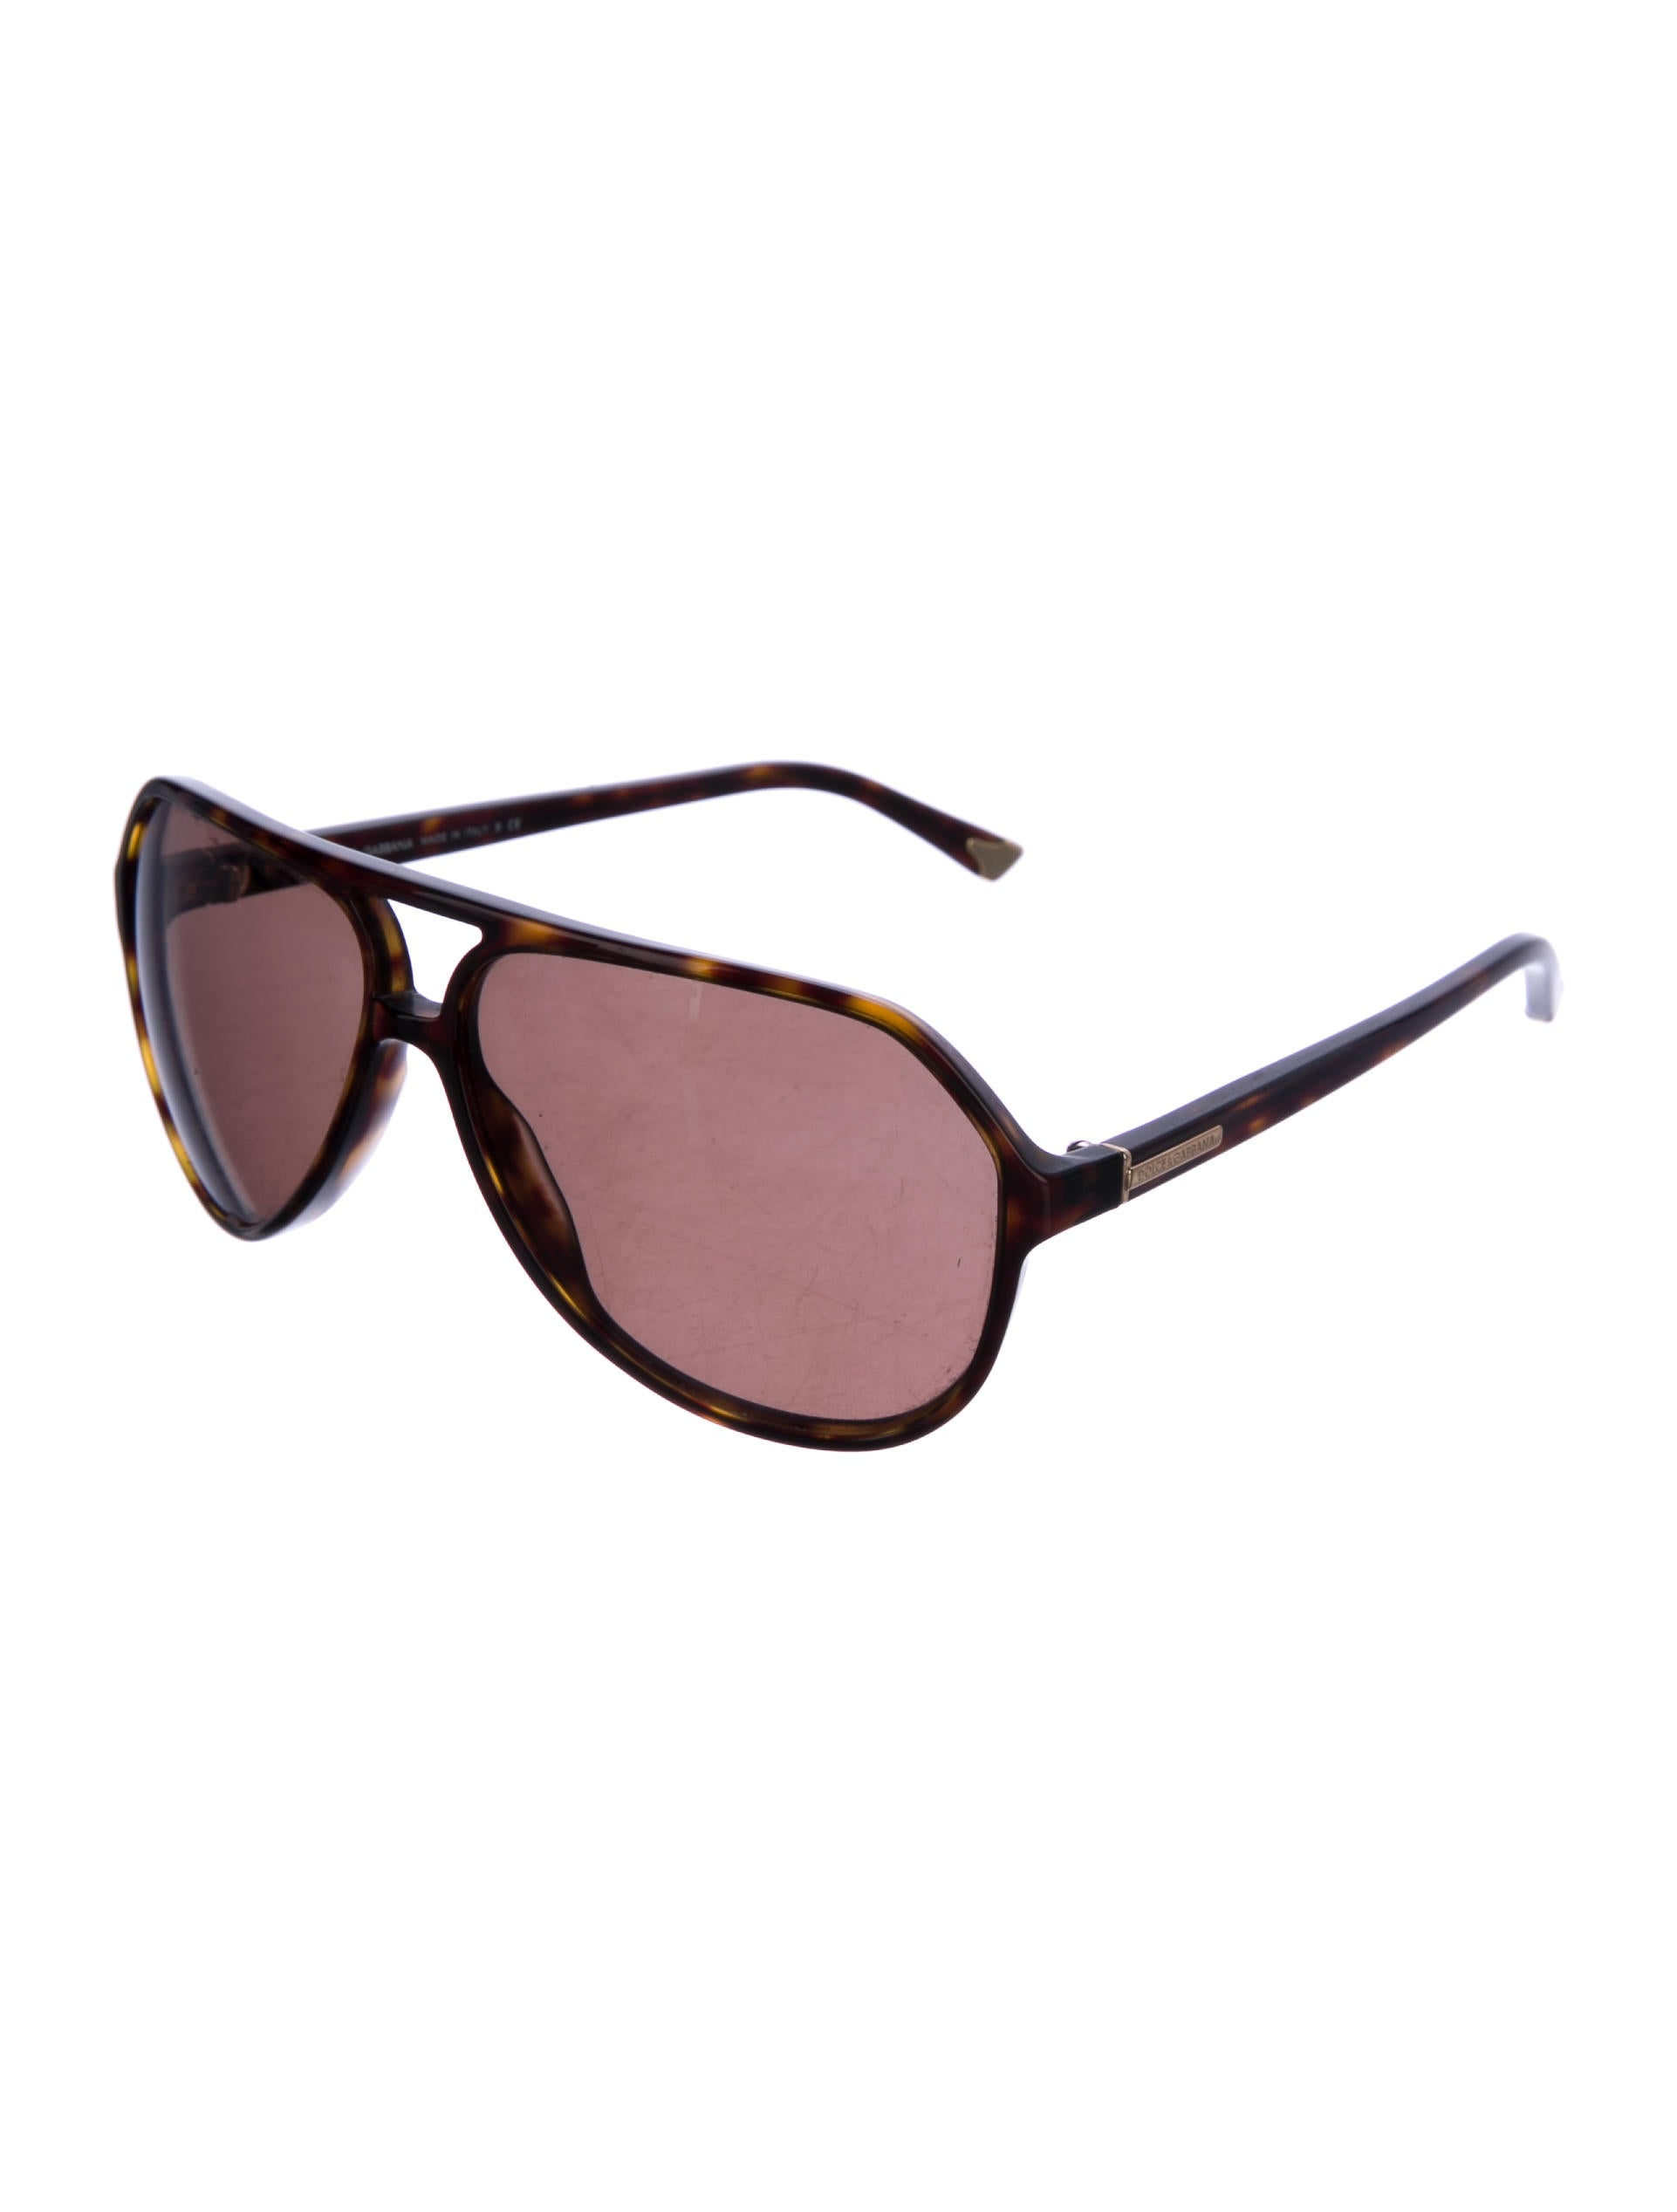 e8bbfa4d41dd Dolce   Gabbana Aviator Sunglasses Brown